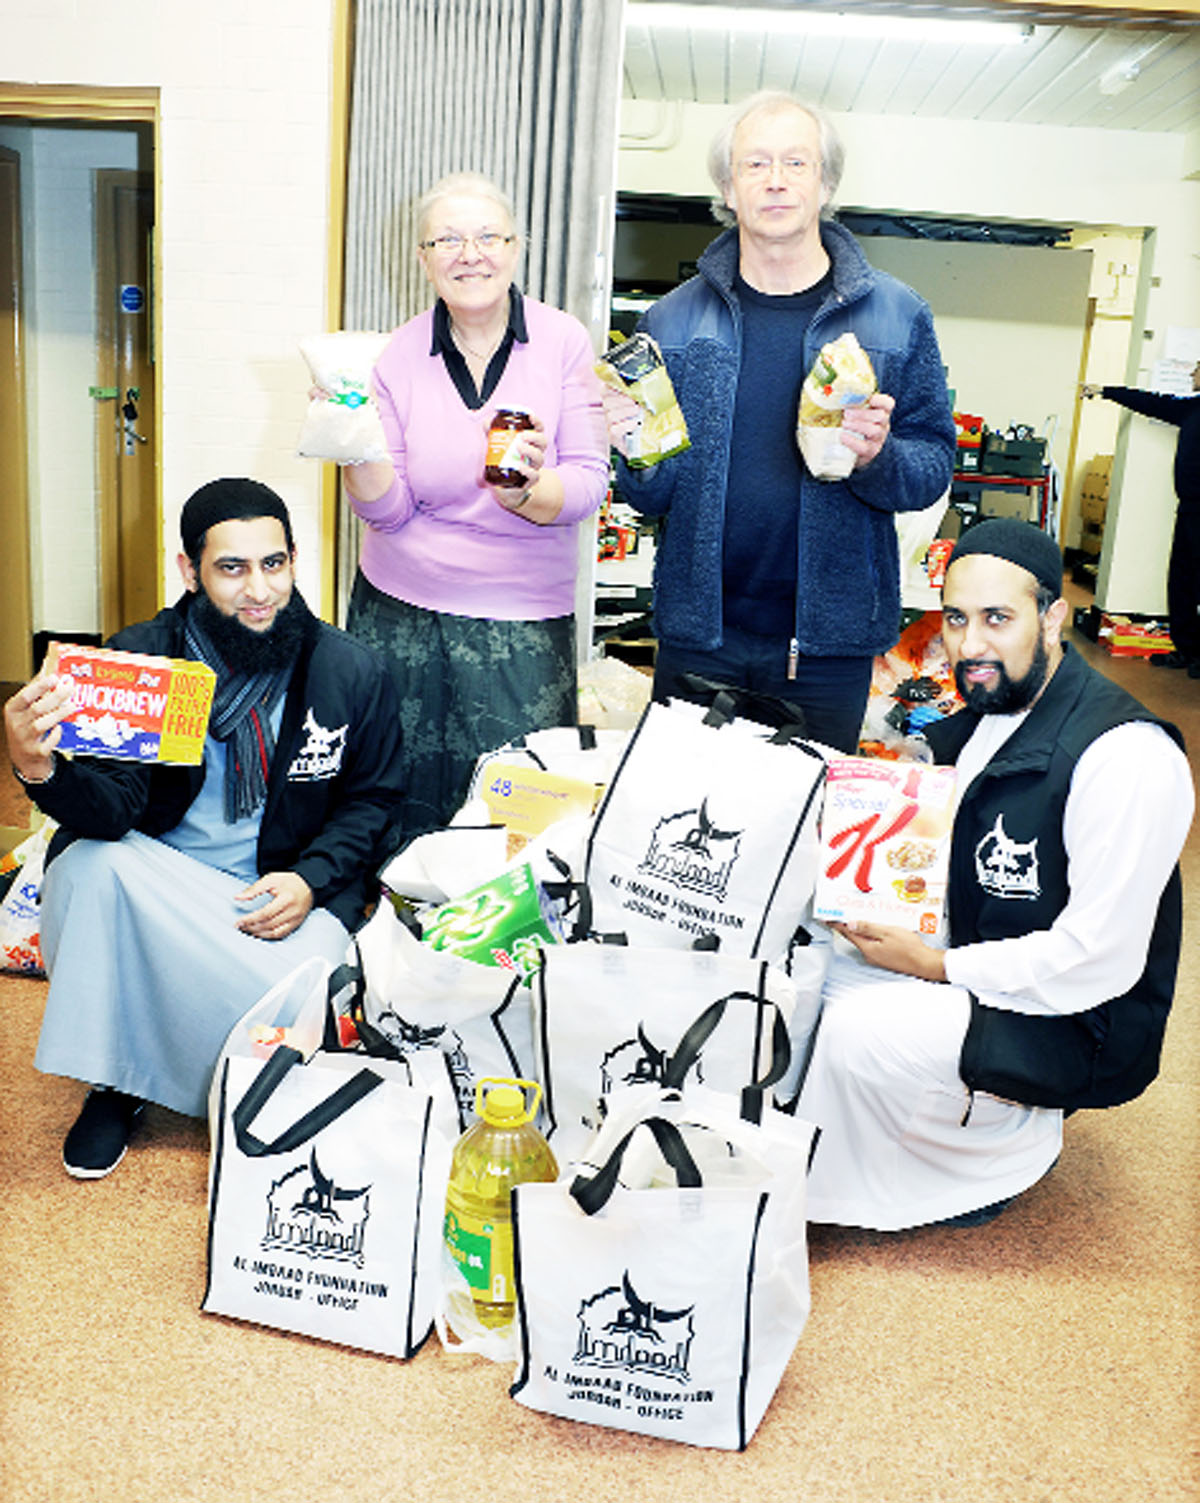 With some food from the Al-Imdaad Foundation, from left, Abdussamad Mulla (county director), Ros Duerden (Blackburn Foodbank), Coun Phil Riley and Zubair Valimulla (international projects co-ordinator)